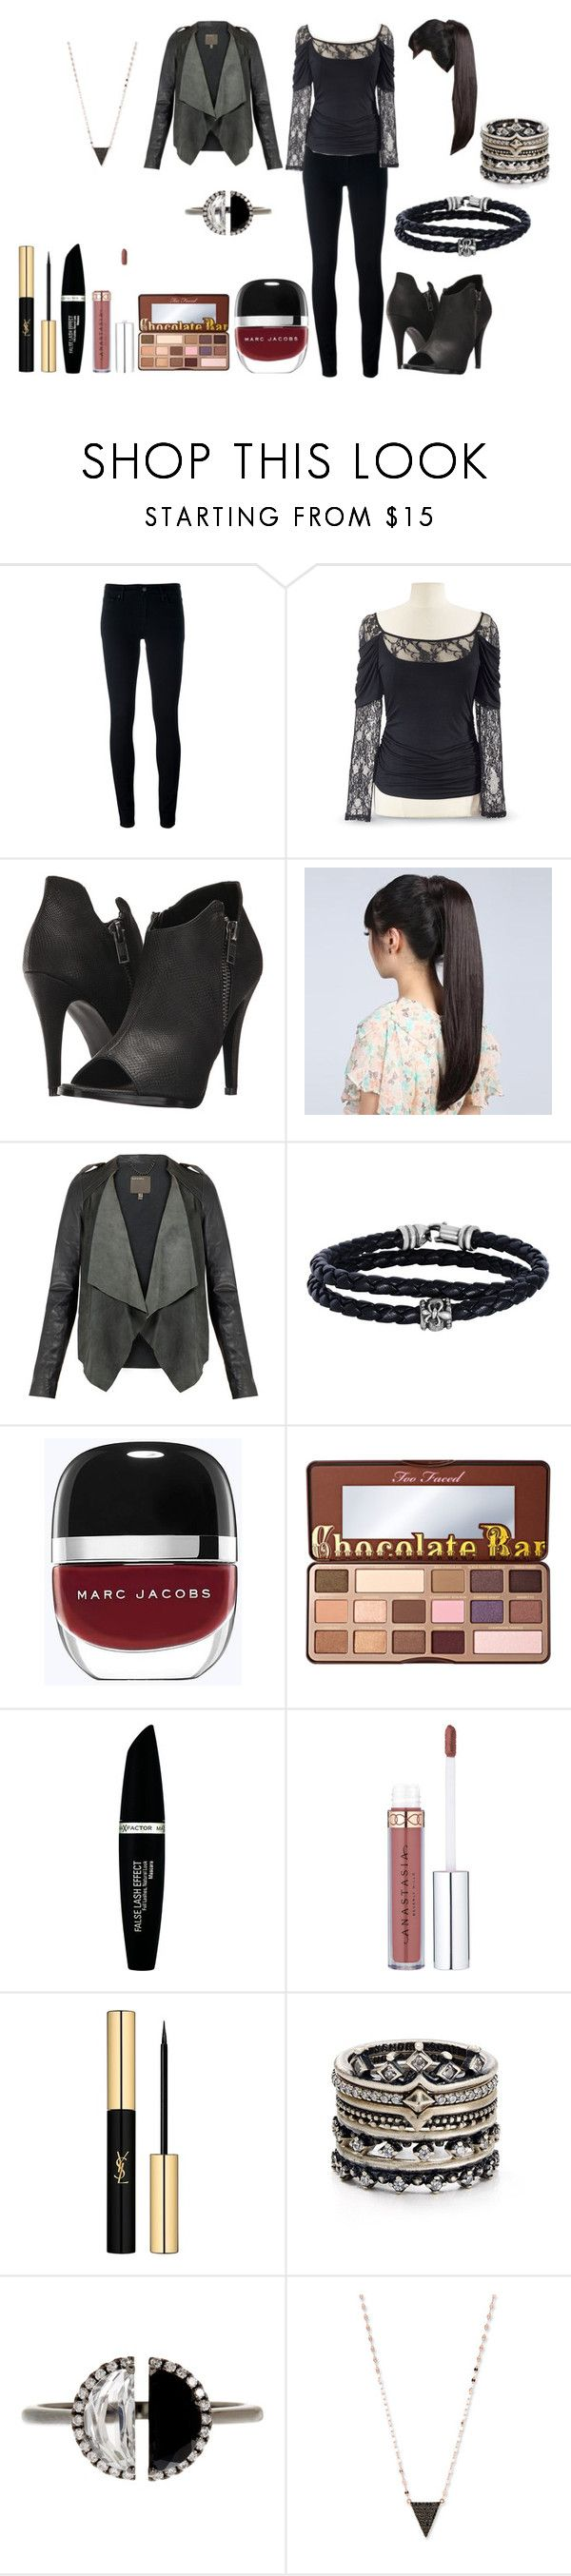 """Untitled #828"" by michelle-konner ❤ liked on Polyvore featuring Levi's, Michael Antonio, Wigs2You, MuuBaa, Phillip Gavriel, Marc Jacobs, Too Faced Cosmetics, Max Factor, Yves Saint Laurent and Kendra Scott"